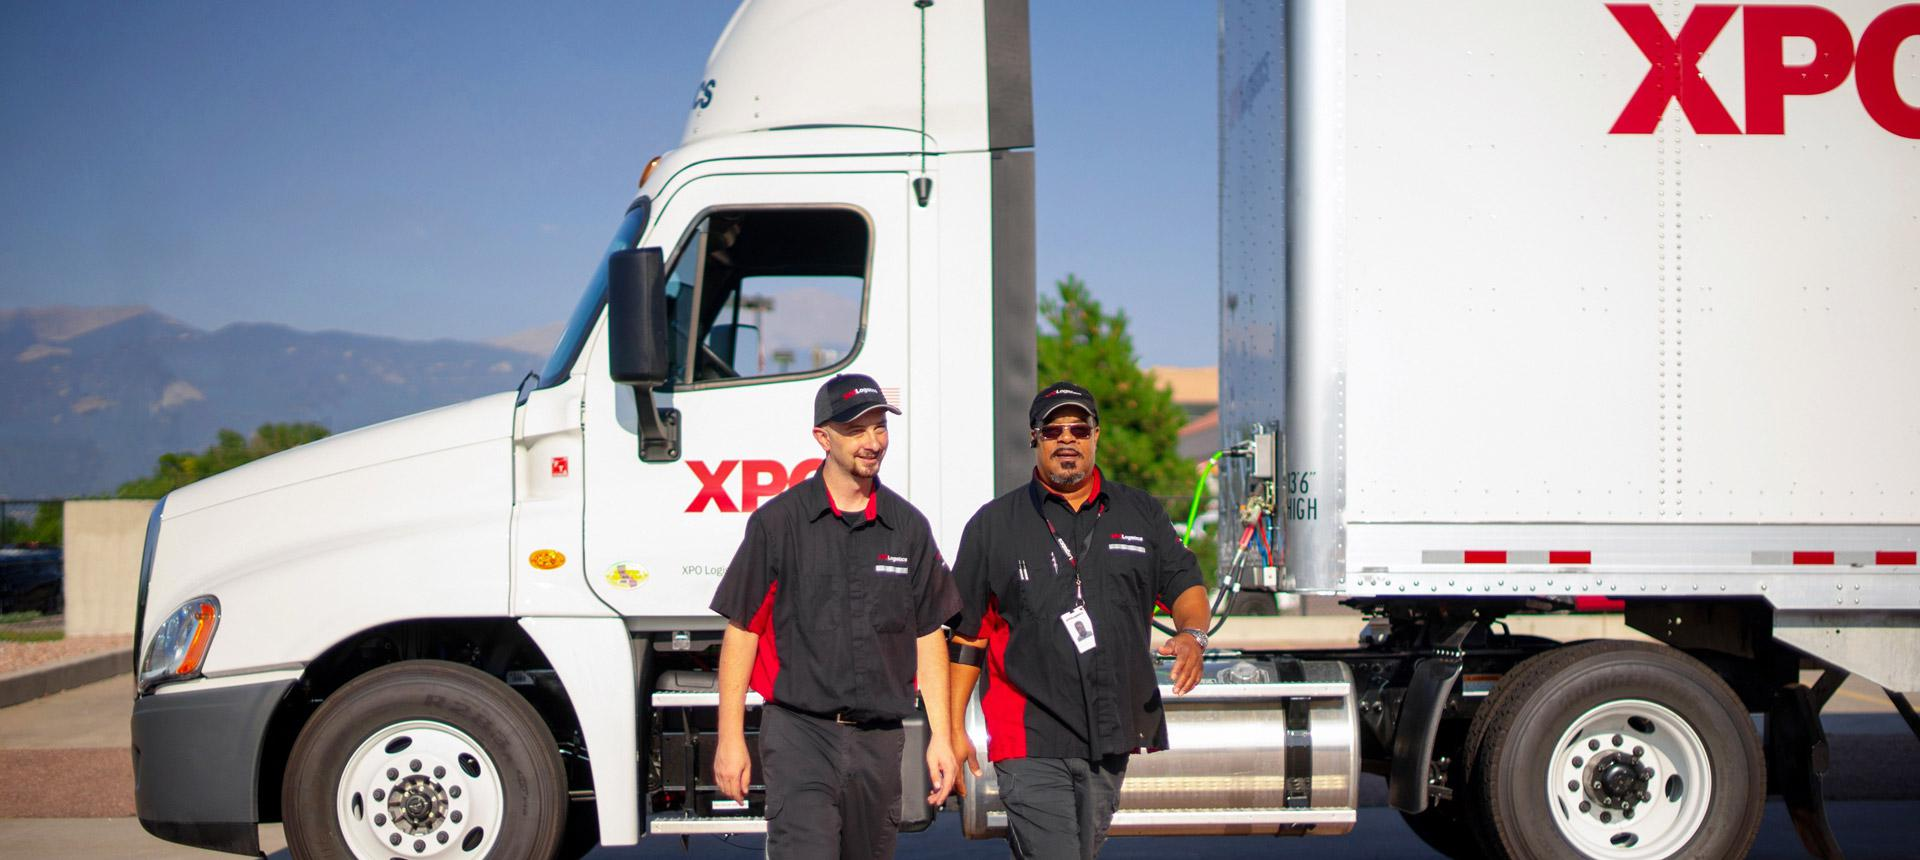 XPO drivers in front of truck